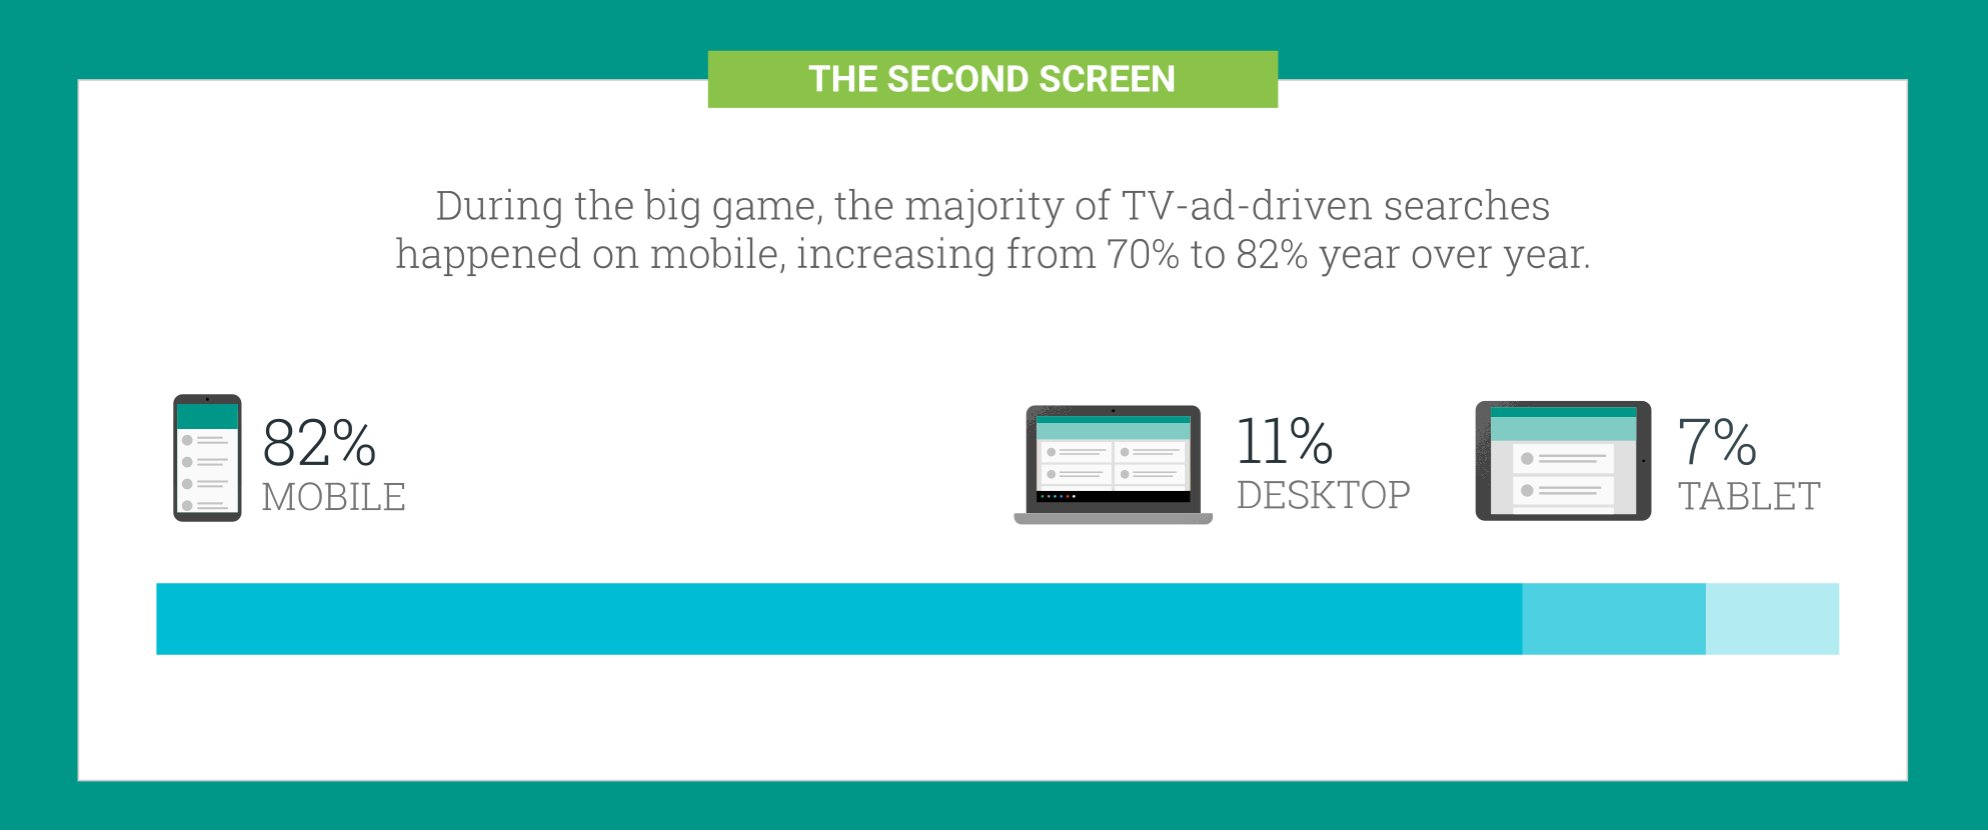 For brands advertising during the game, mid-game searches were up 40% over 2015 https://t.co/XblYL2pkuN via @Google https://t.co/1KzhiRUzI3